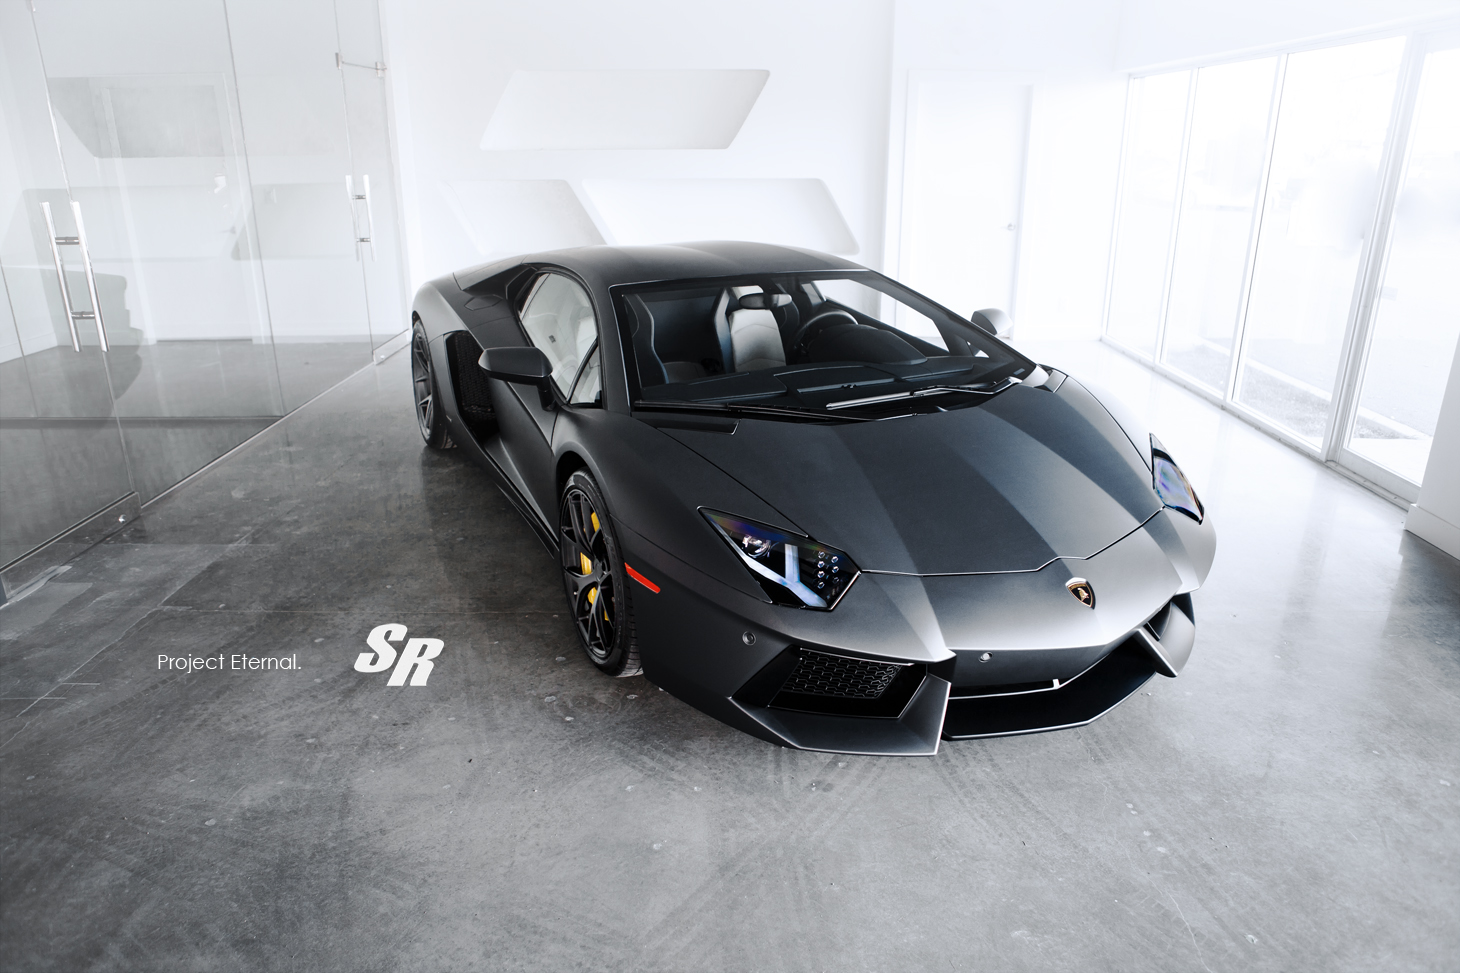 project eternal sr auto lamborghini aventador lp 700 nero nemesis. Black Bedroom Furniture Sets. Home Design Ideas